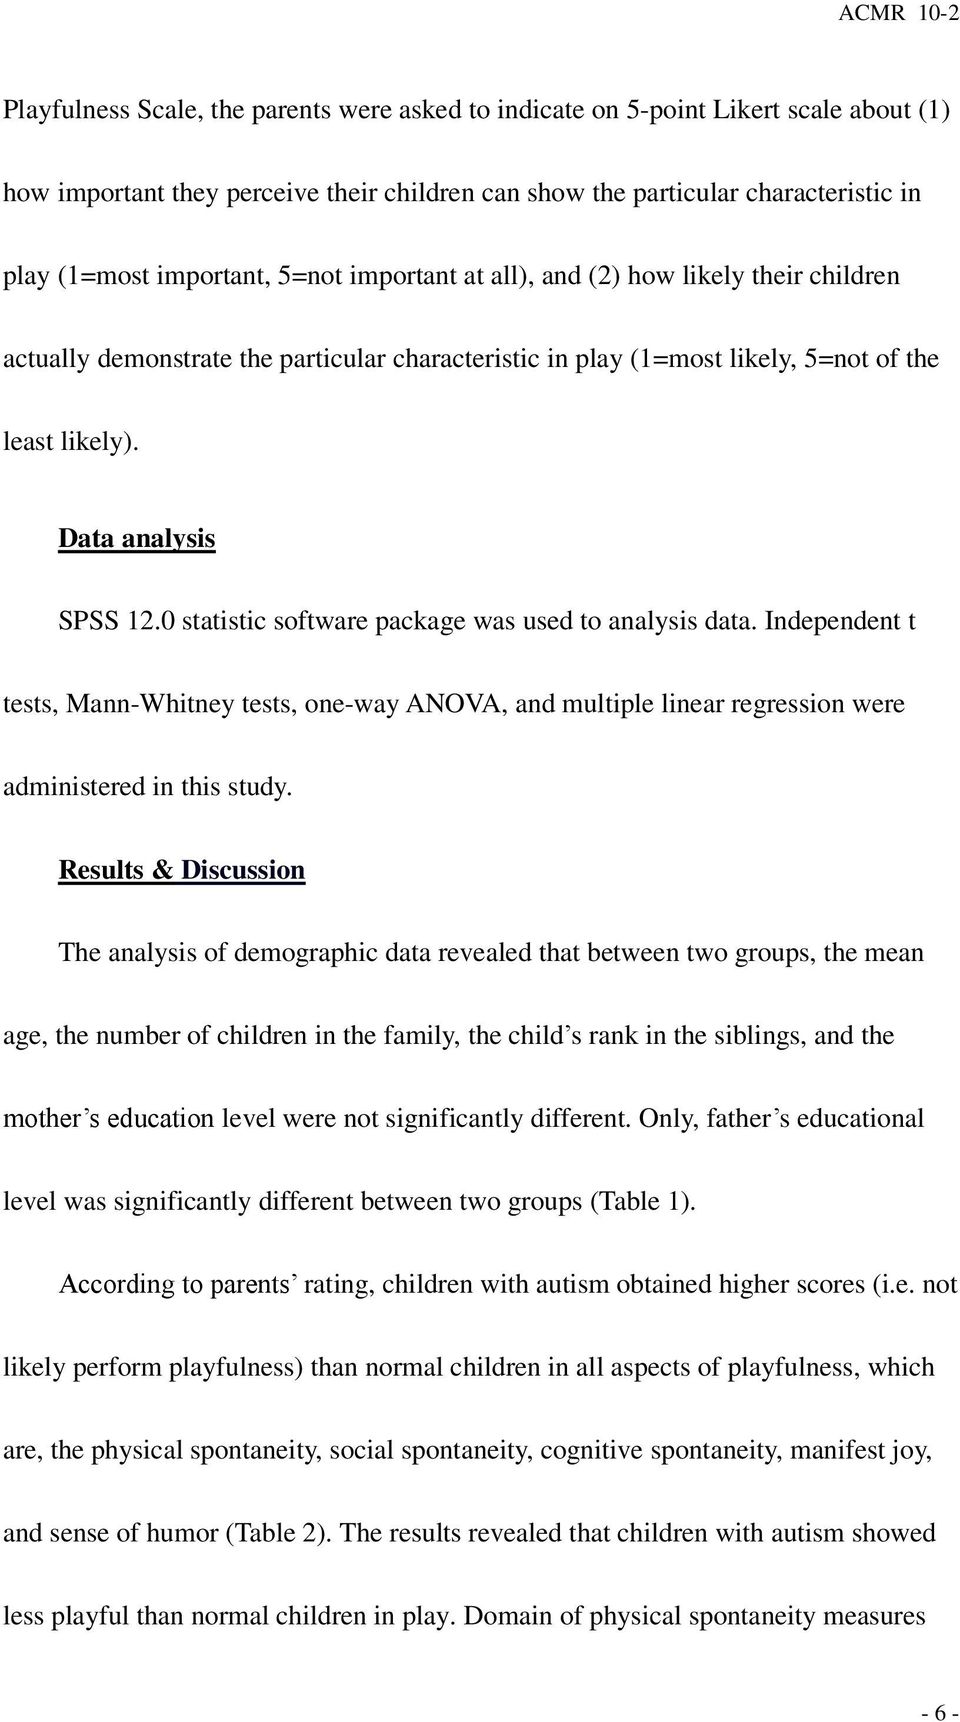 0 statistic software package was used to analysis data. Independent t tests, Mann-Whitney tests, one-way ANOVA, and multiple linear regression were administered in this study.